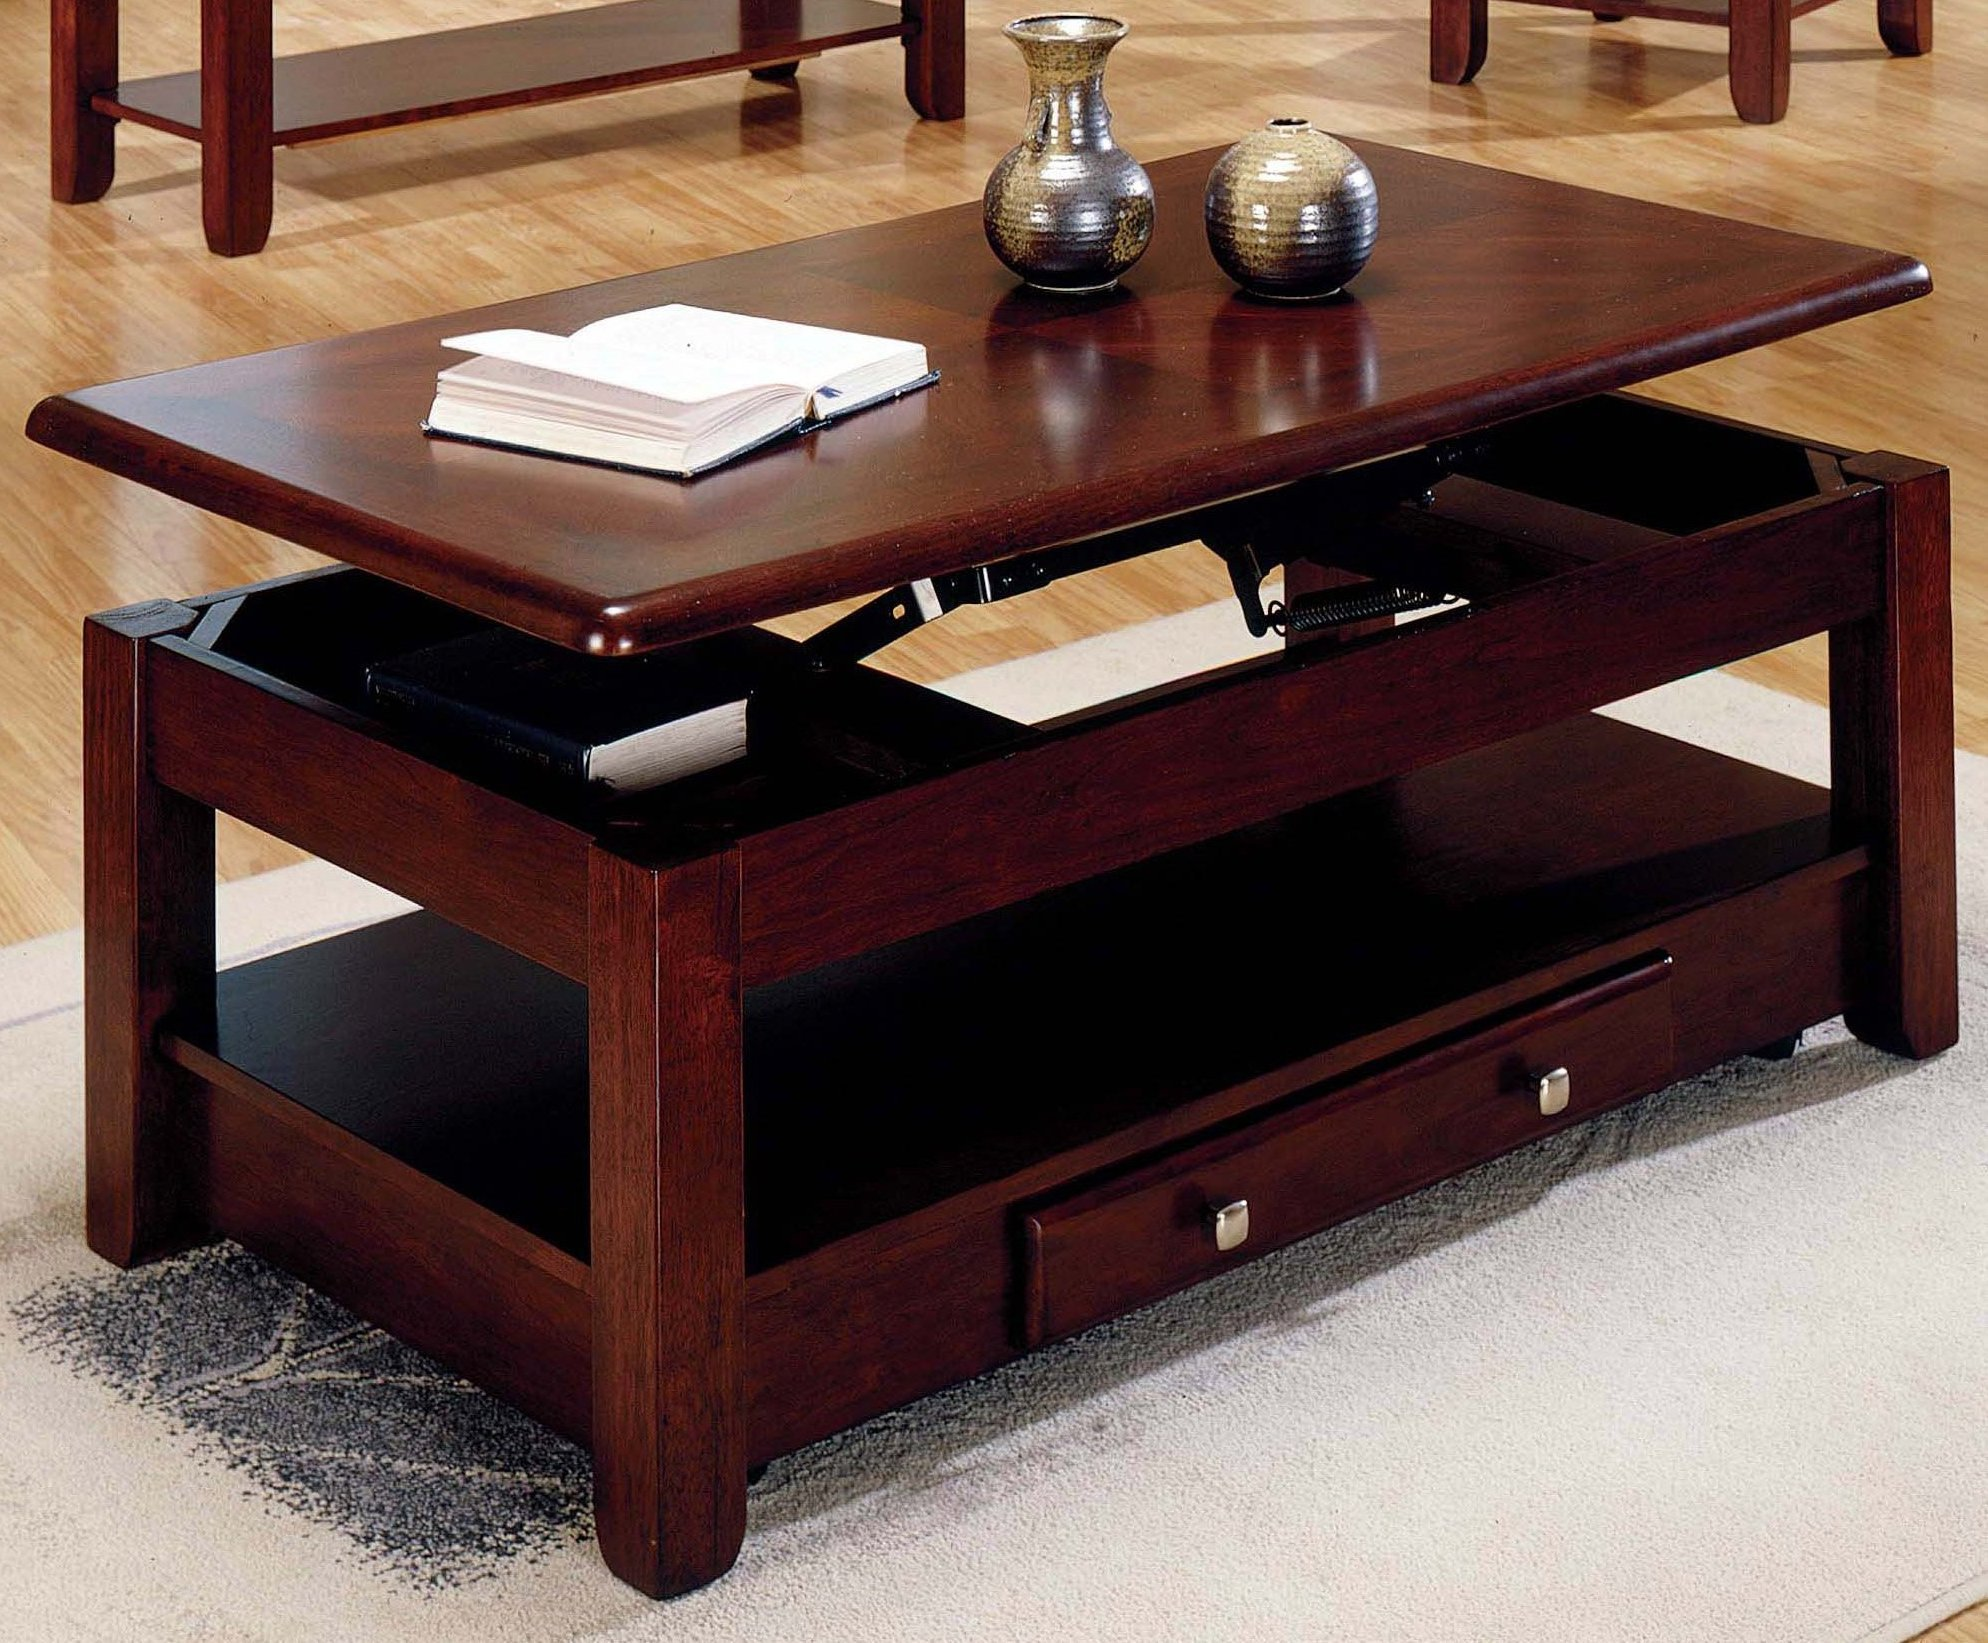 cherry wood coffee table design tures end tables circular glass top storage black bedside tea furniture sofa with seating asian lamps row one round set highpoint ping centre pine